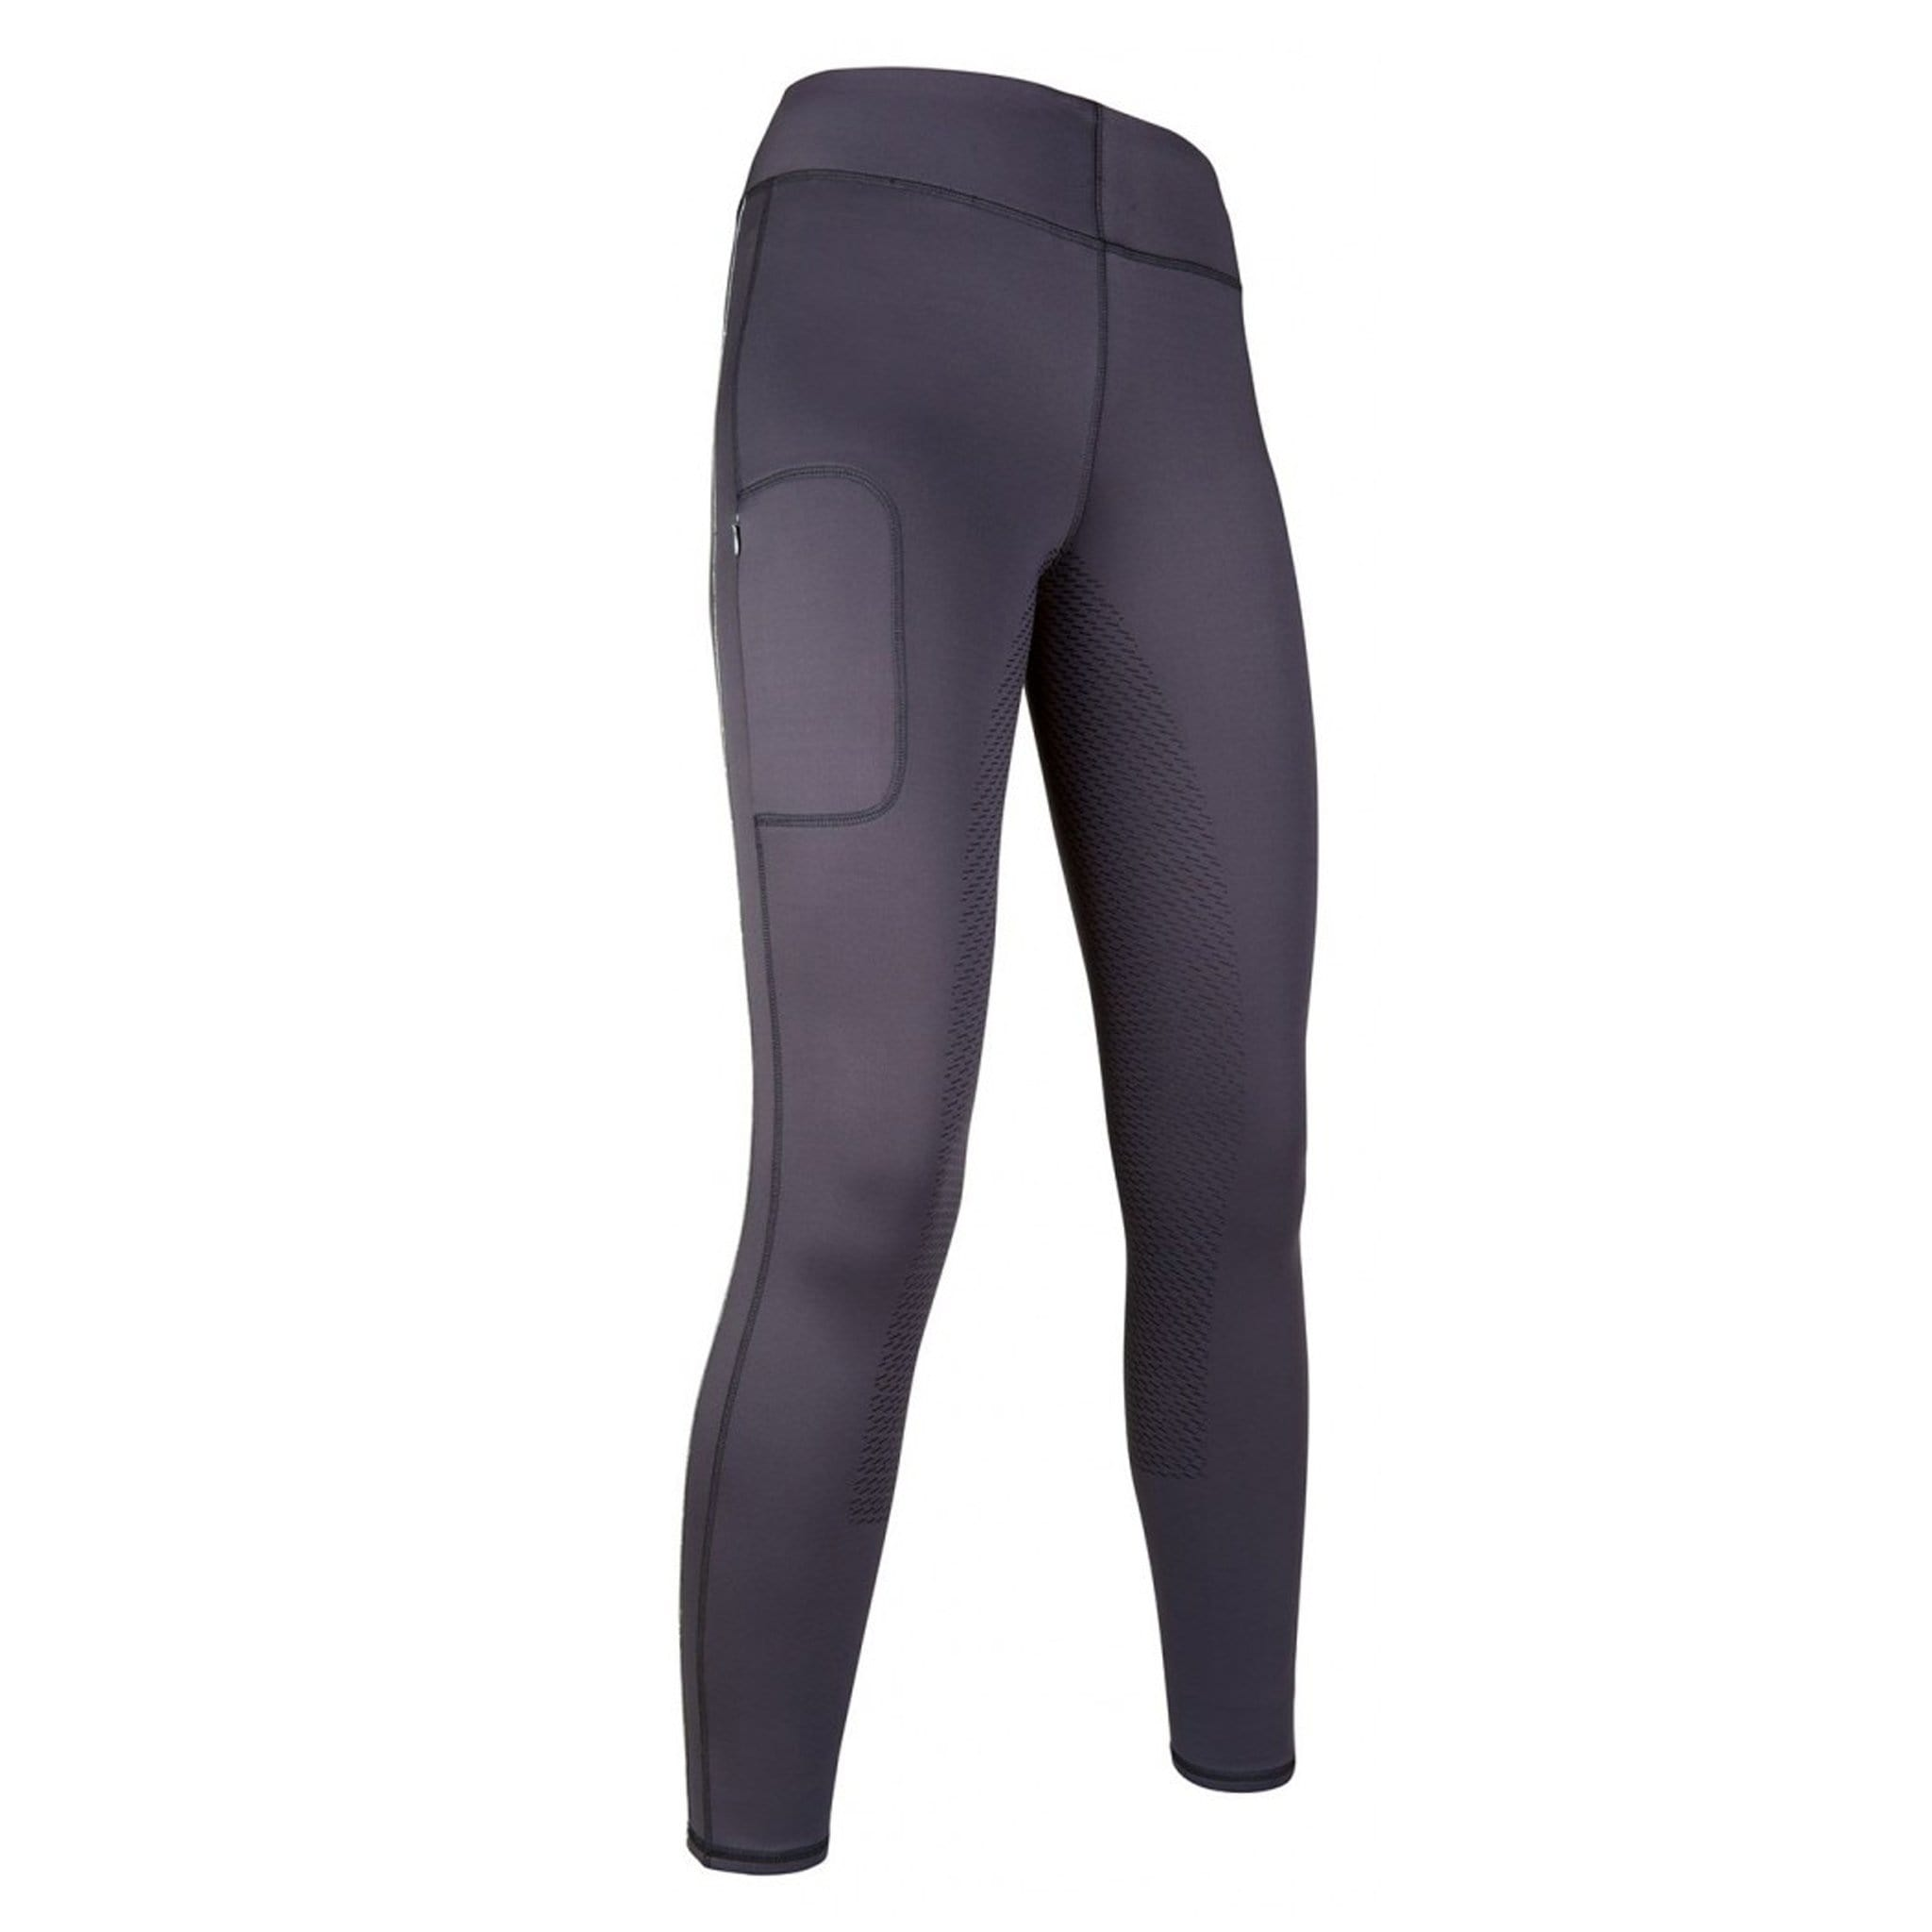 HKM Mondiale Silicone Full Seat Riding Tights 11325 Dark Blue-Grey Front